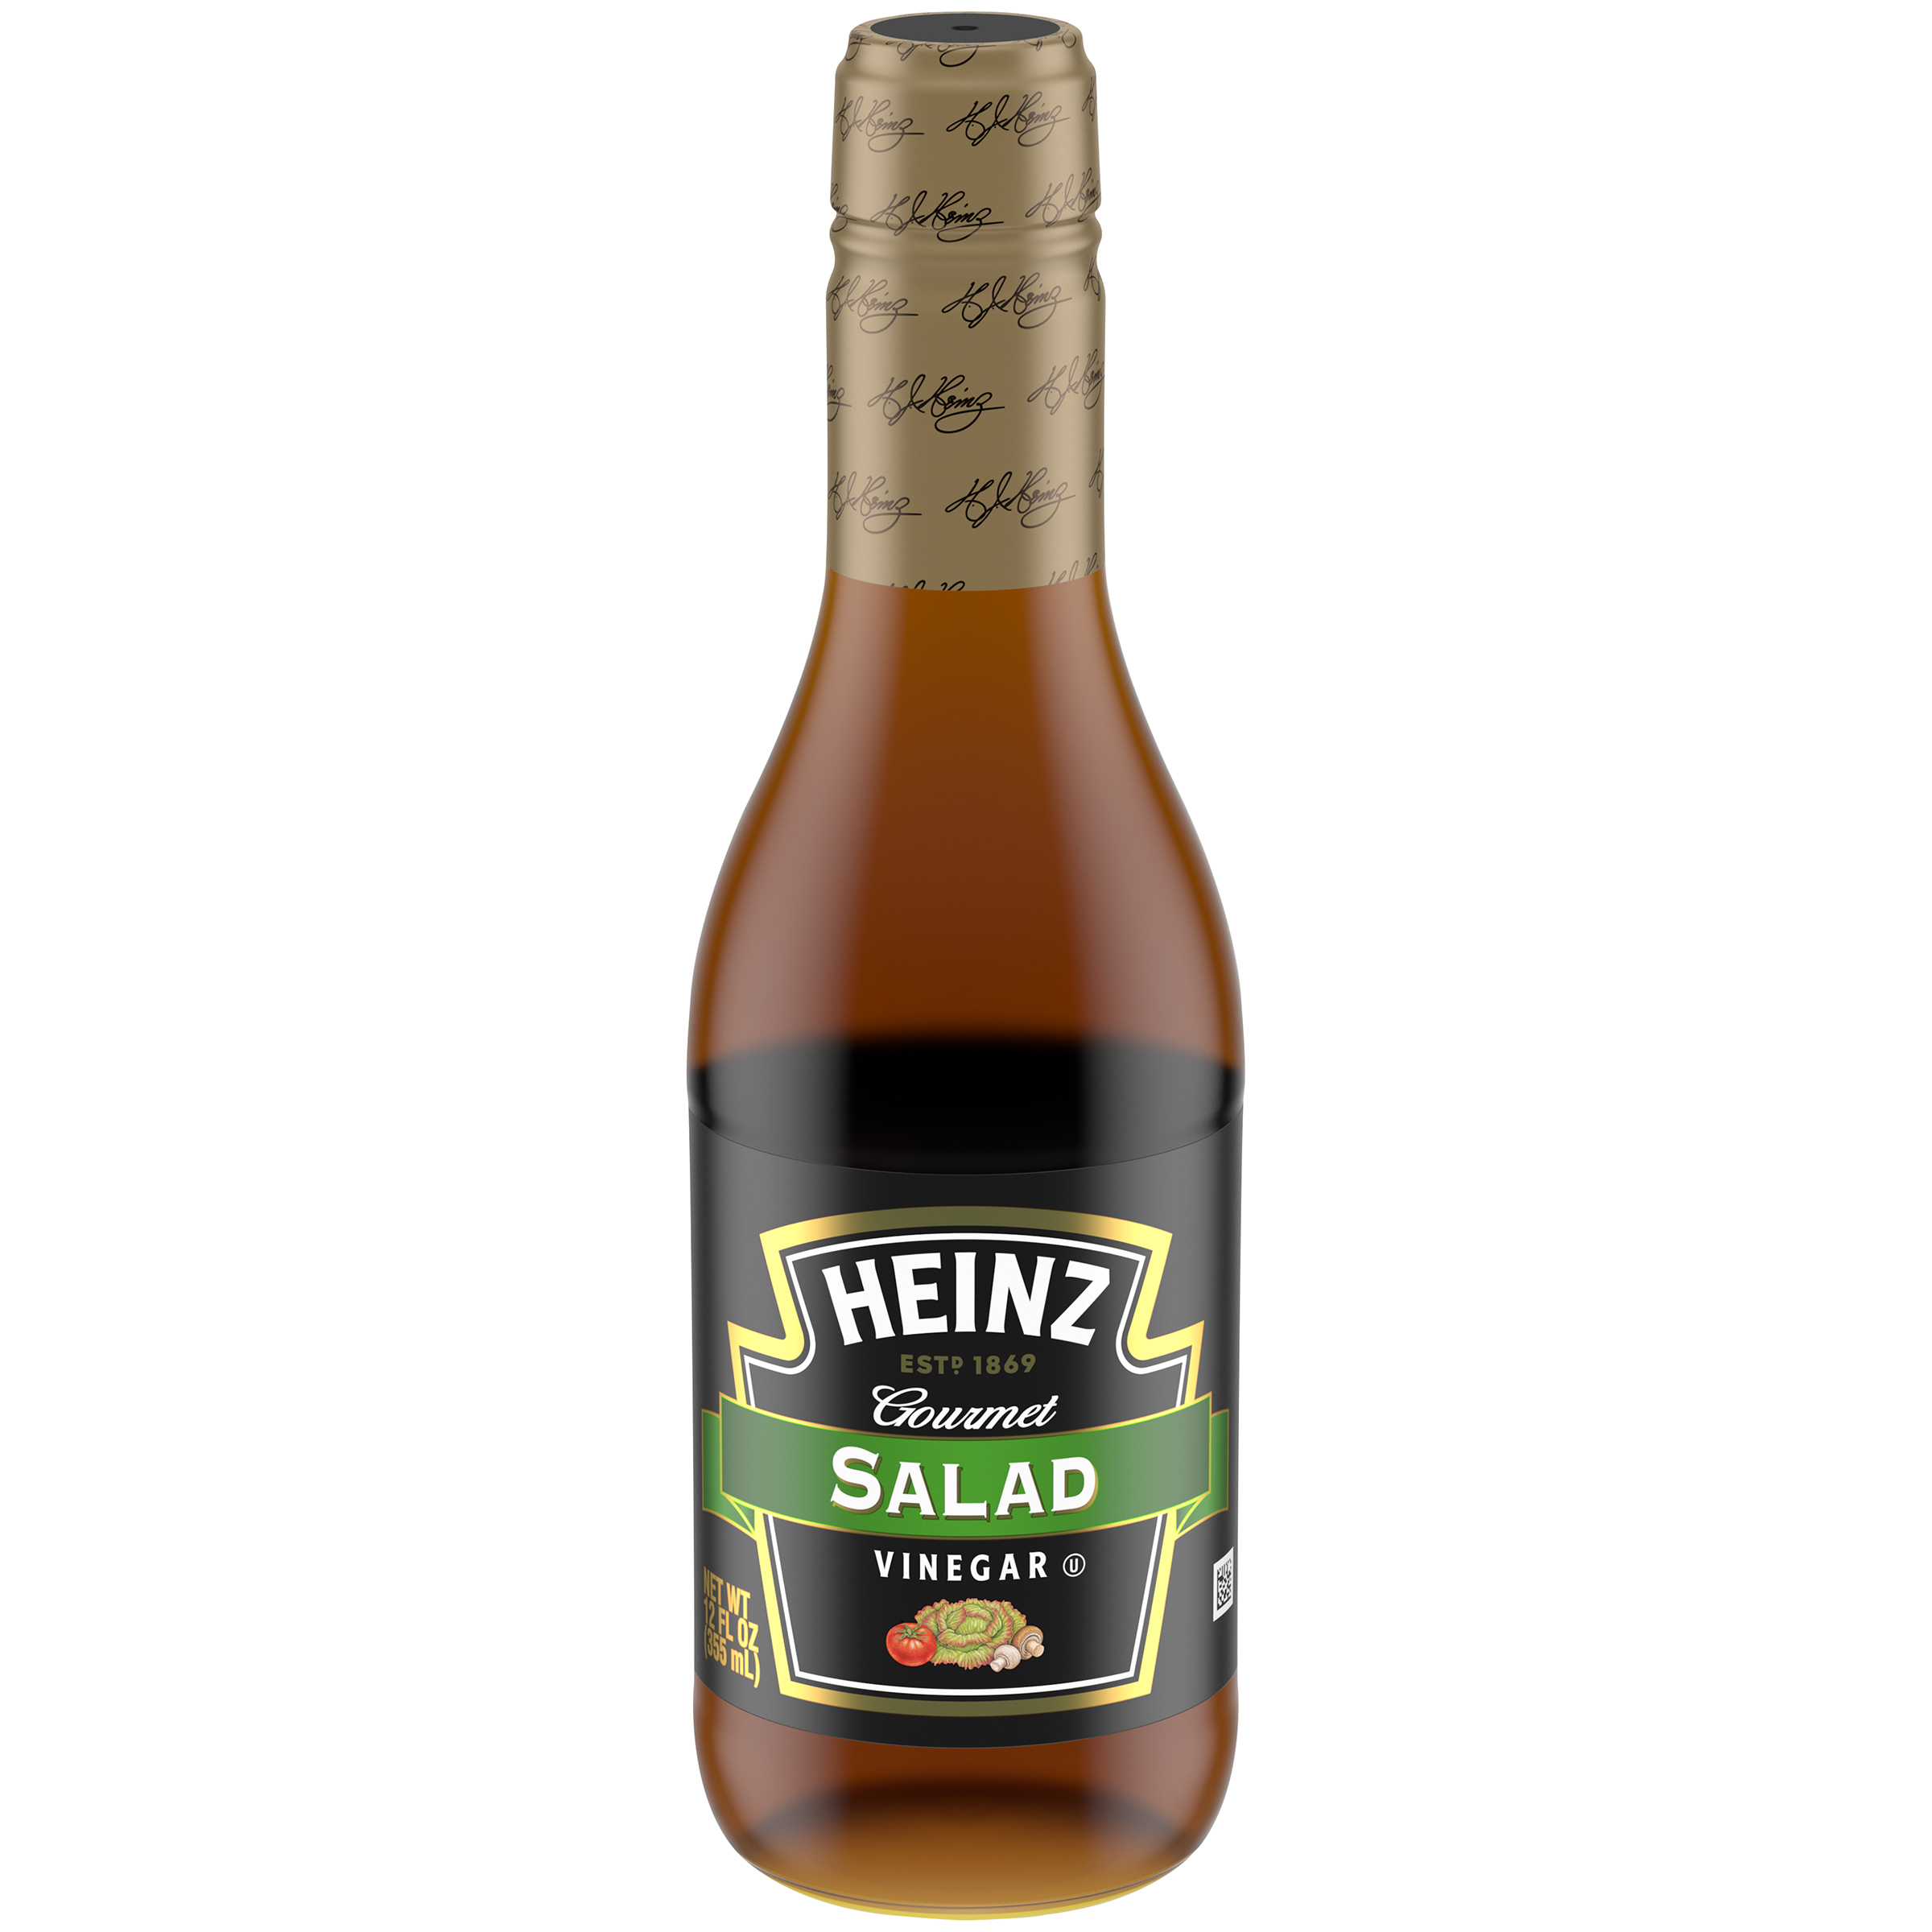 Heinz Gourmet Salad Vinegar 12 fl oz Bottle image